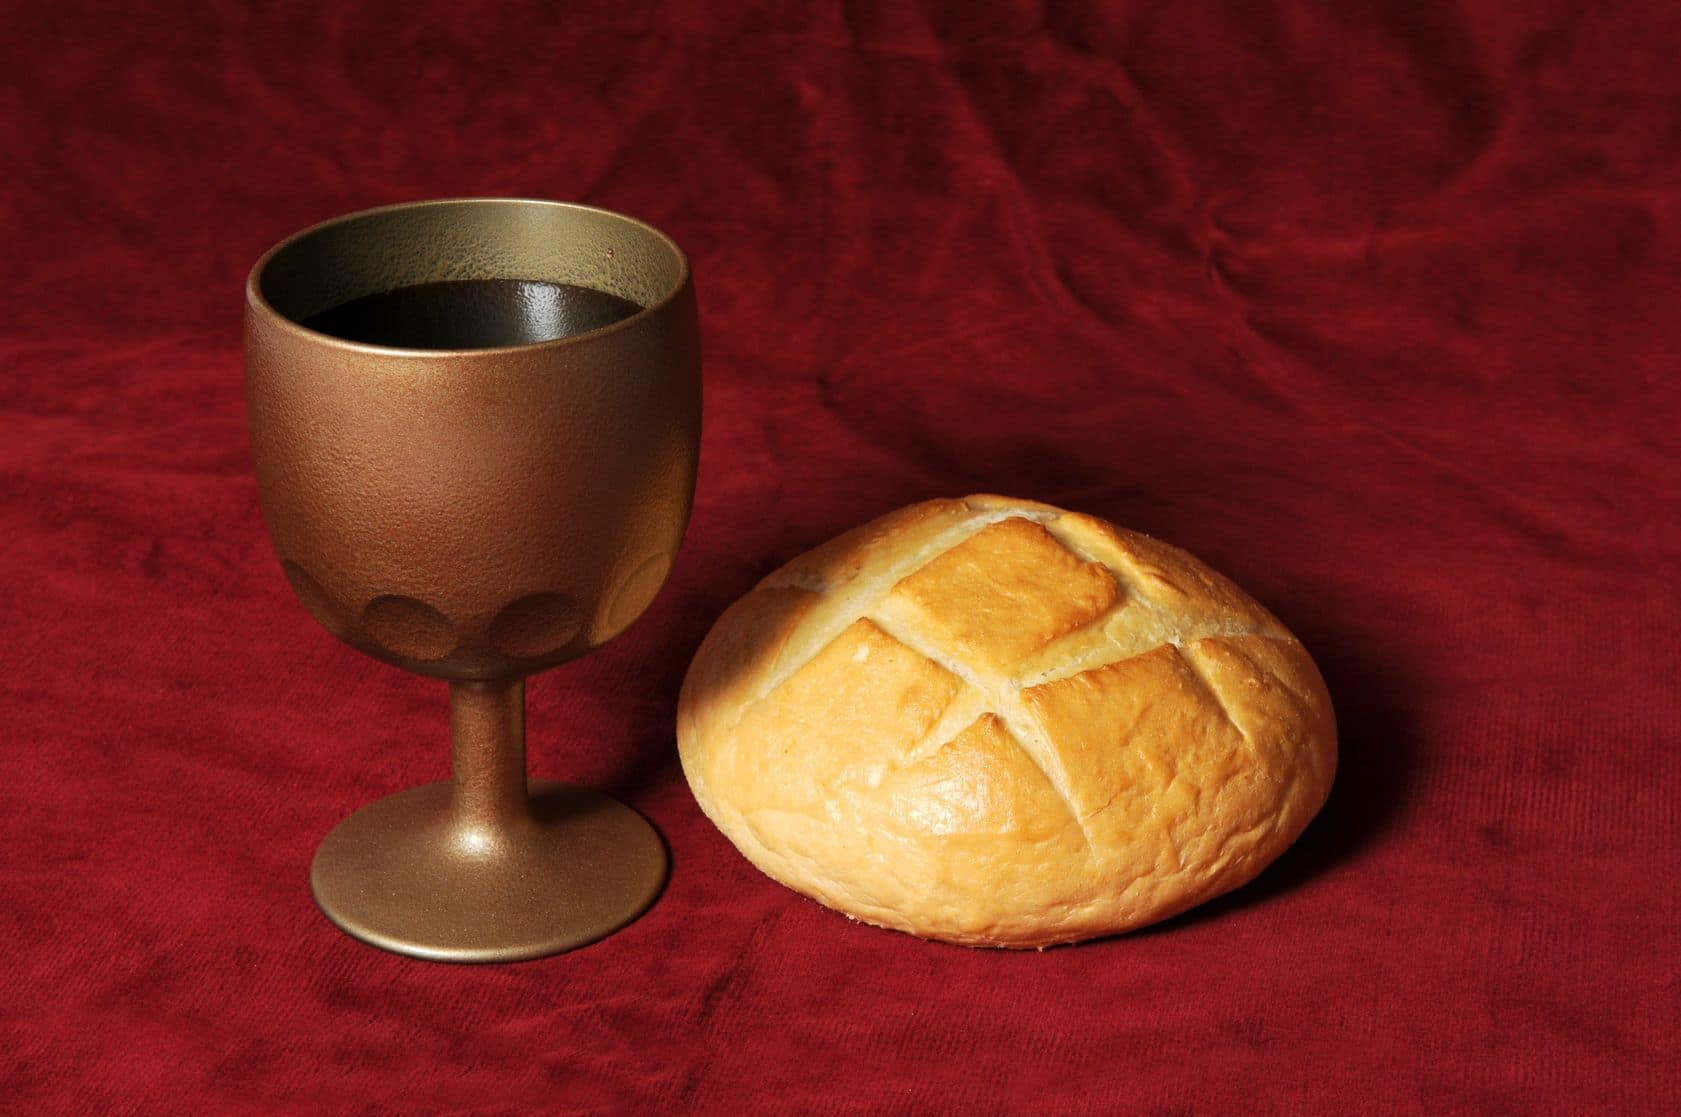 Article XVIII - Of the   Lord's Supper - The Supper of the Lord is not only a sign of the love that Christians ought to have among themselves one to another, but rather is a sacrament of our redemption by Christ's death; insomuch that, to such as rightly, worthily, and with faith receive the same, the bread which we break is a partaking of the body of Christ; and likewise the cup of blessing is a partaking of the blood of Christ.Transubstantiation, or the change of the substance of bread and wine in the Supper of our Lord, cannot be proved by Holy Writ, but is repugnant to the plain words of Scripture, overthroweth the nature of a sacrament, and hath given occasion to many superstitions.The body of Christ is given, taken, and eaten in the Supper, only after a heavenly and spiritual manner. And the mean whereby the body of Christ is received and eaten in the Supper is faith.The Sacrament of the Lord's Supper was not by Christ's ordinance reserved, carried about, lifted up, or worshiped.